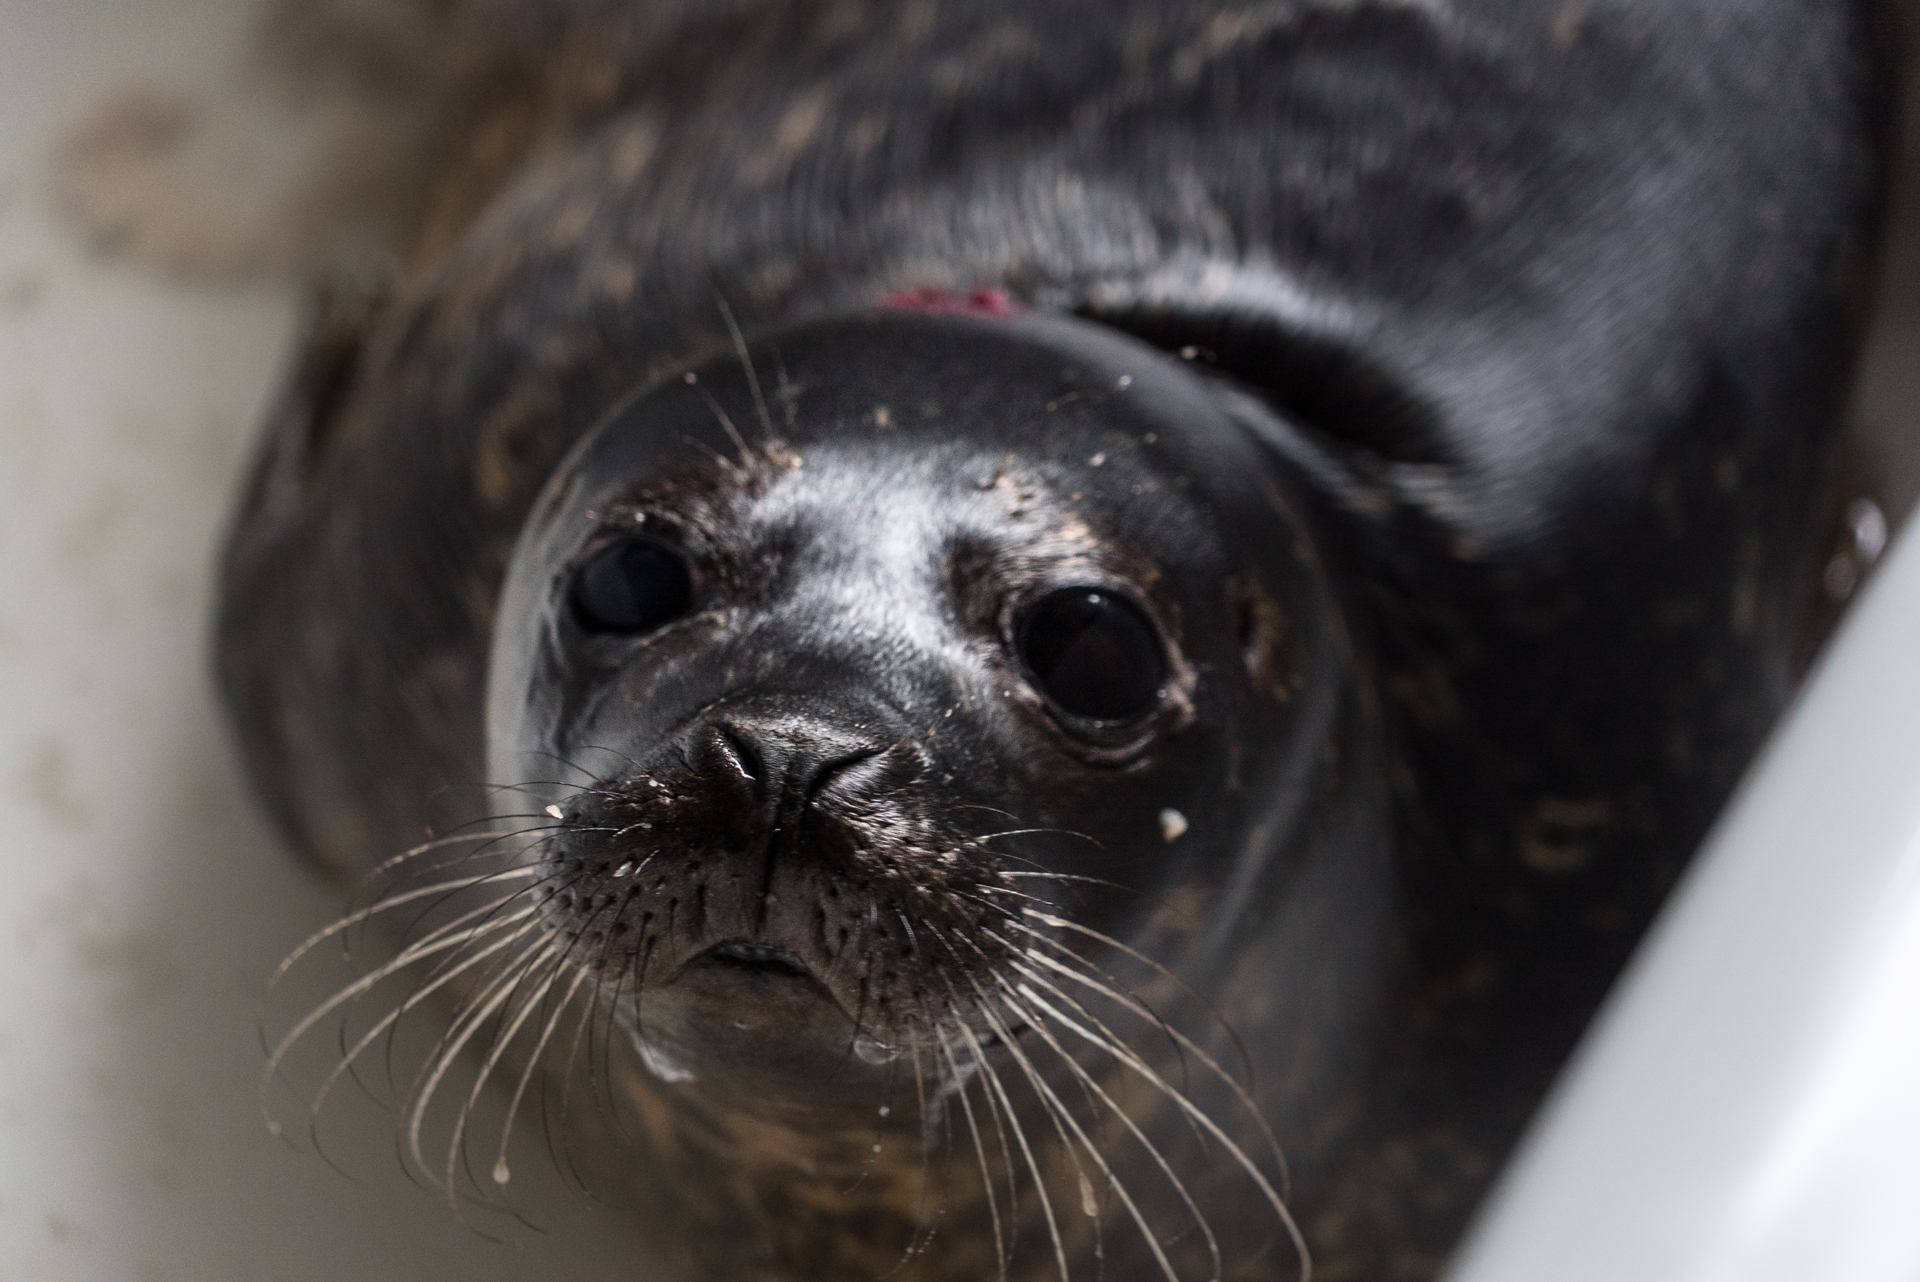 Irish seal sanctuary volunteer